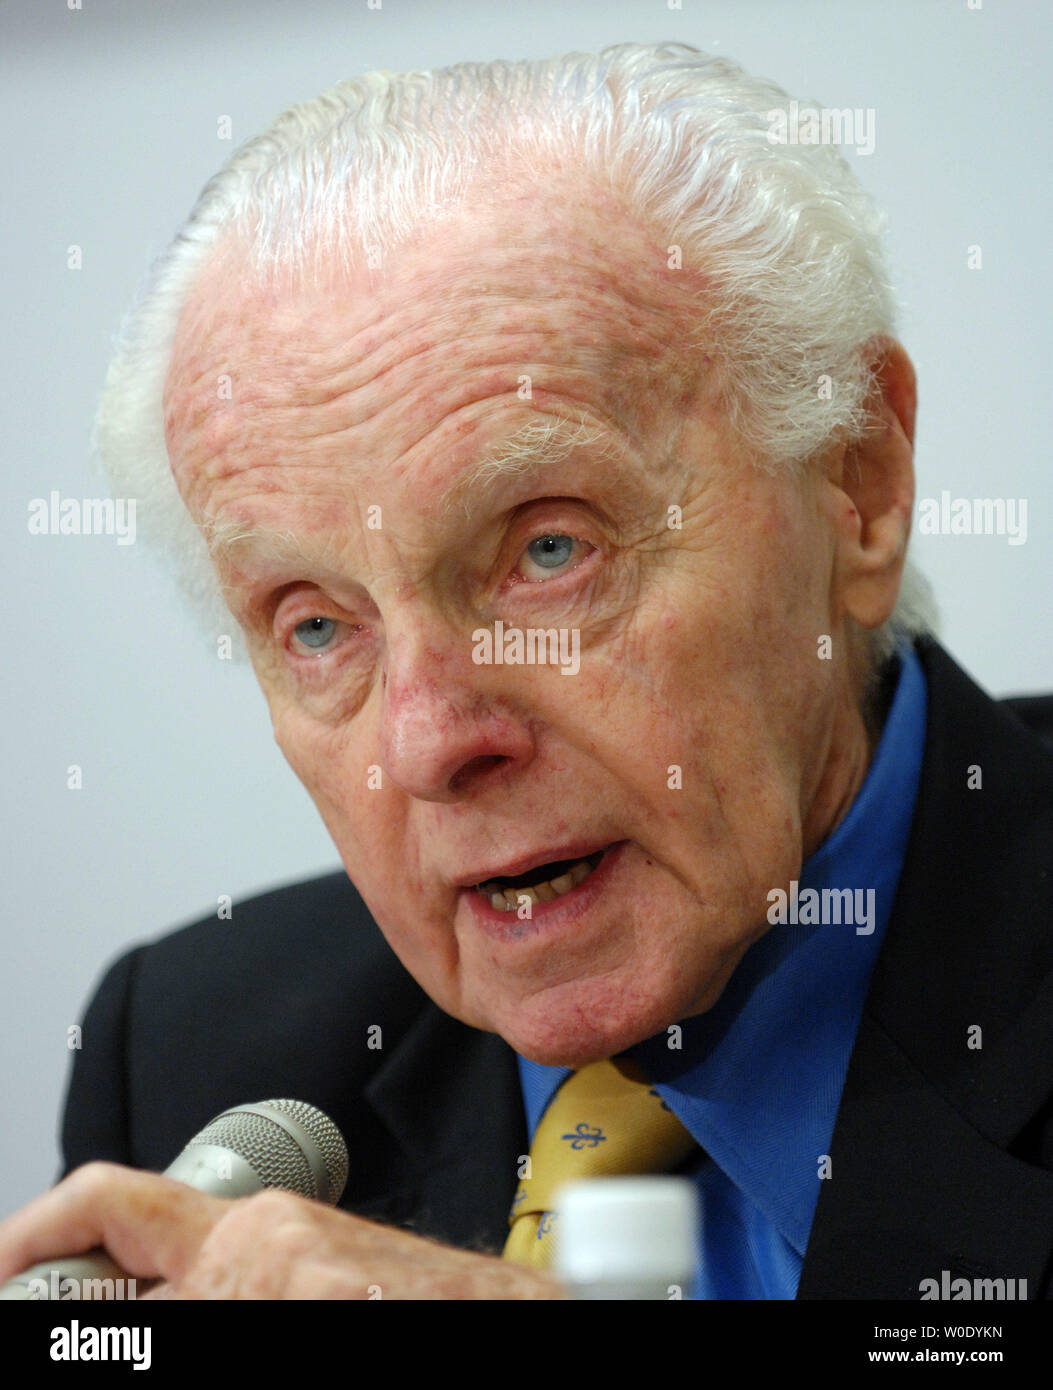 Rep. Tom Lantos, D-CA, speaks during a conference about politics in Russia on October 10, 2007, on Capitol Hill in Washington. One year after Anna Politkovskaya's murder, a Russian journalist and human rights activist known for her opposition to the Chechen conflict and Russian President Putin, opposition leader Garry Kasparov says democracy in Russia is going backwards.    (UPI Photo/Roger L. Wollenberg) - Stock Image